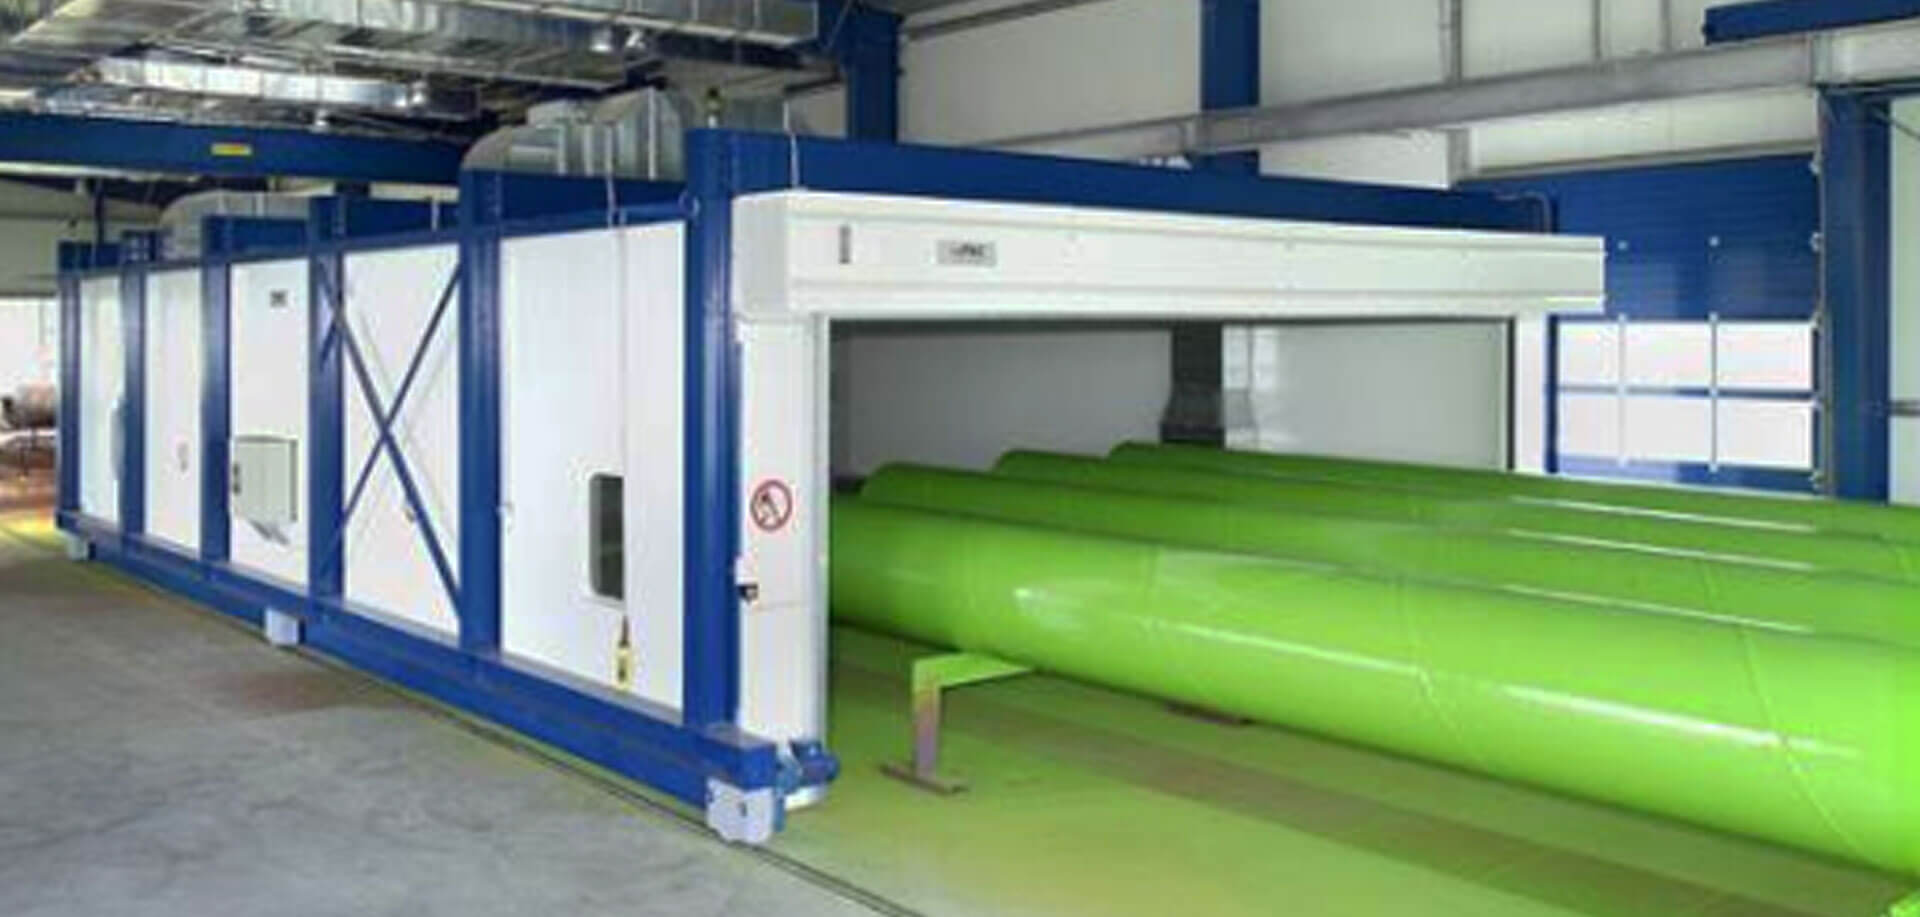 Moveable drying system - inTEC